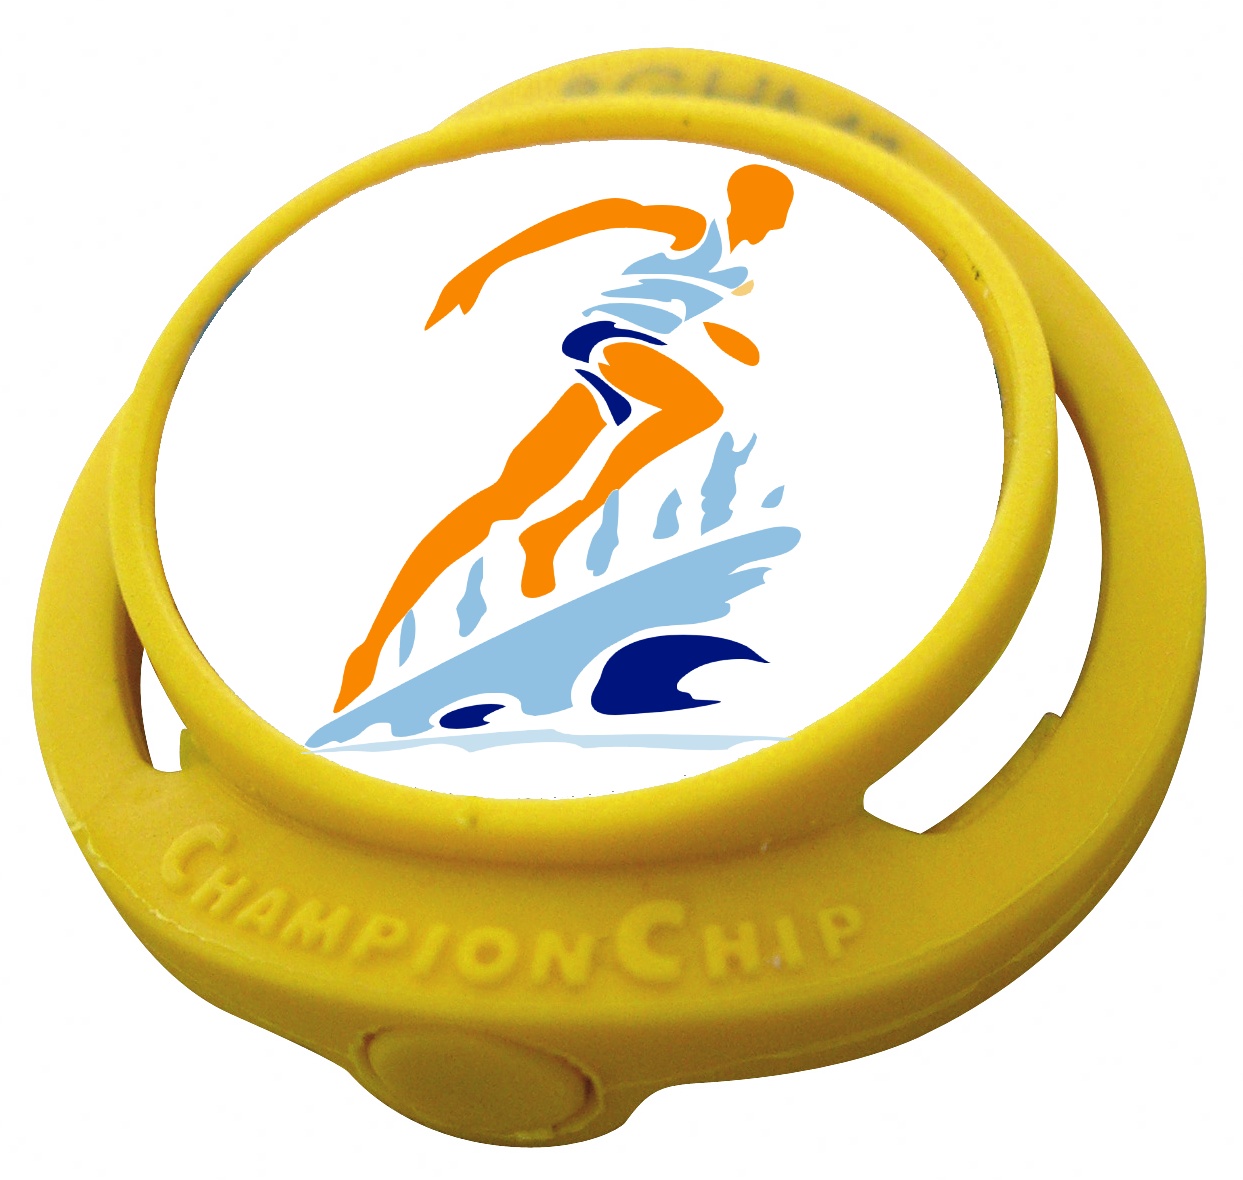 champion-chip-logo